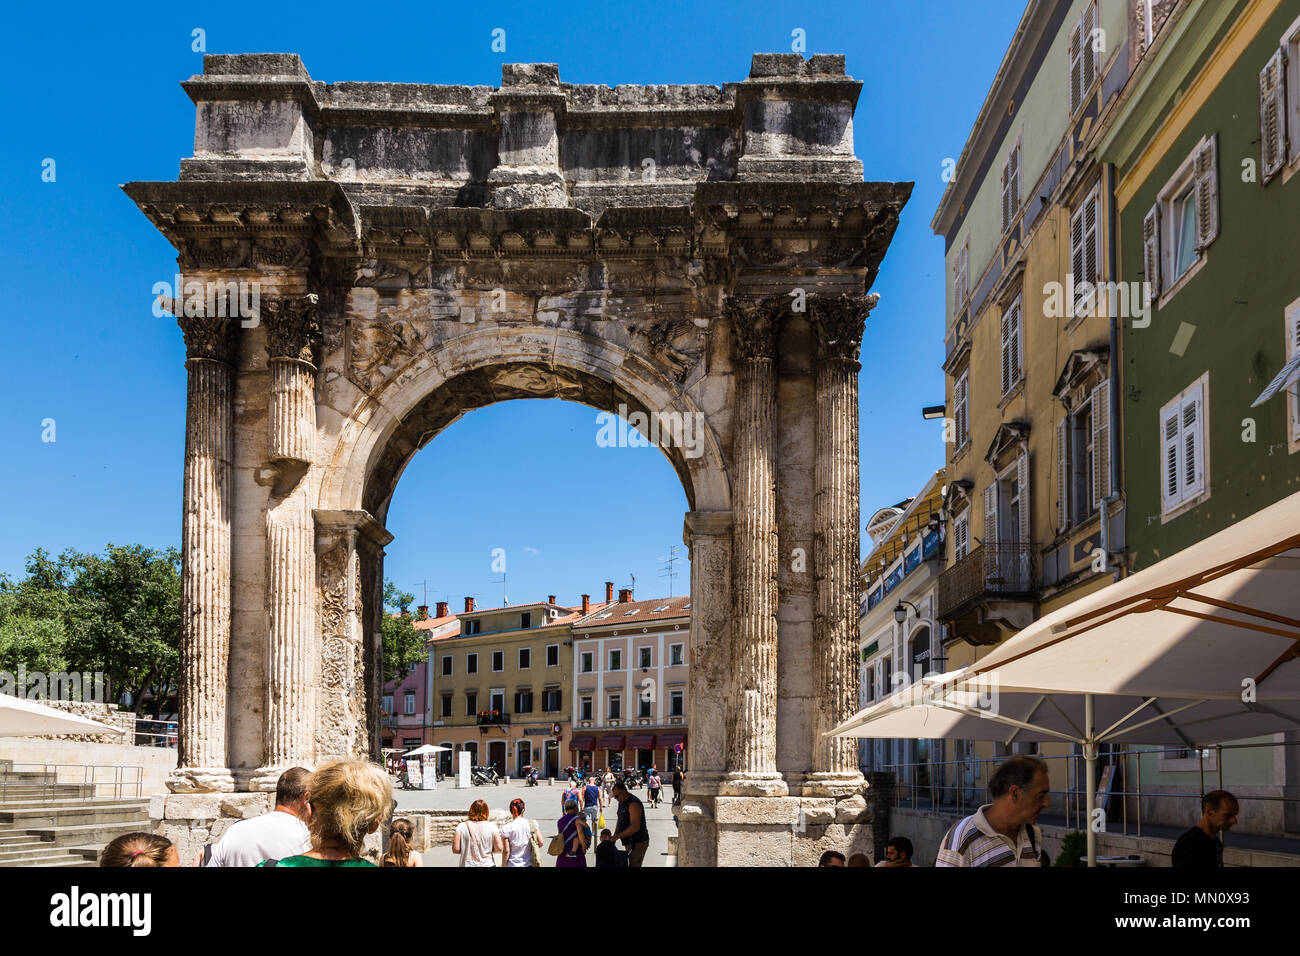 The Triumphal Arch of the Sergi in Pula, Croatia - Stock Image